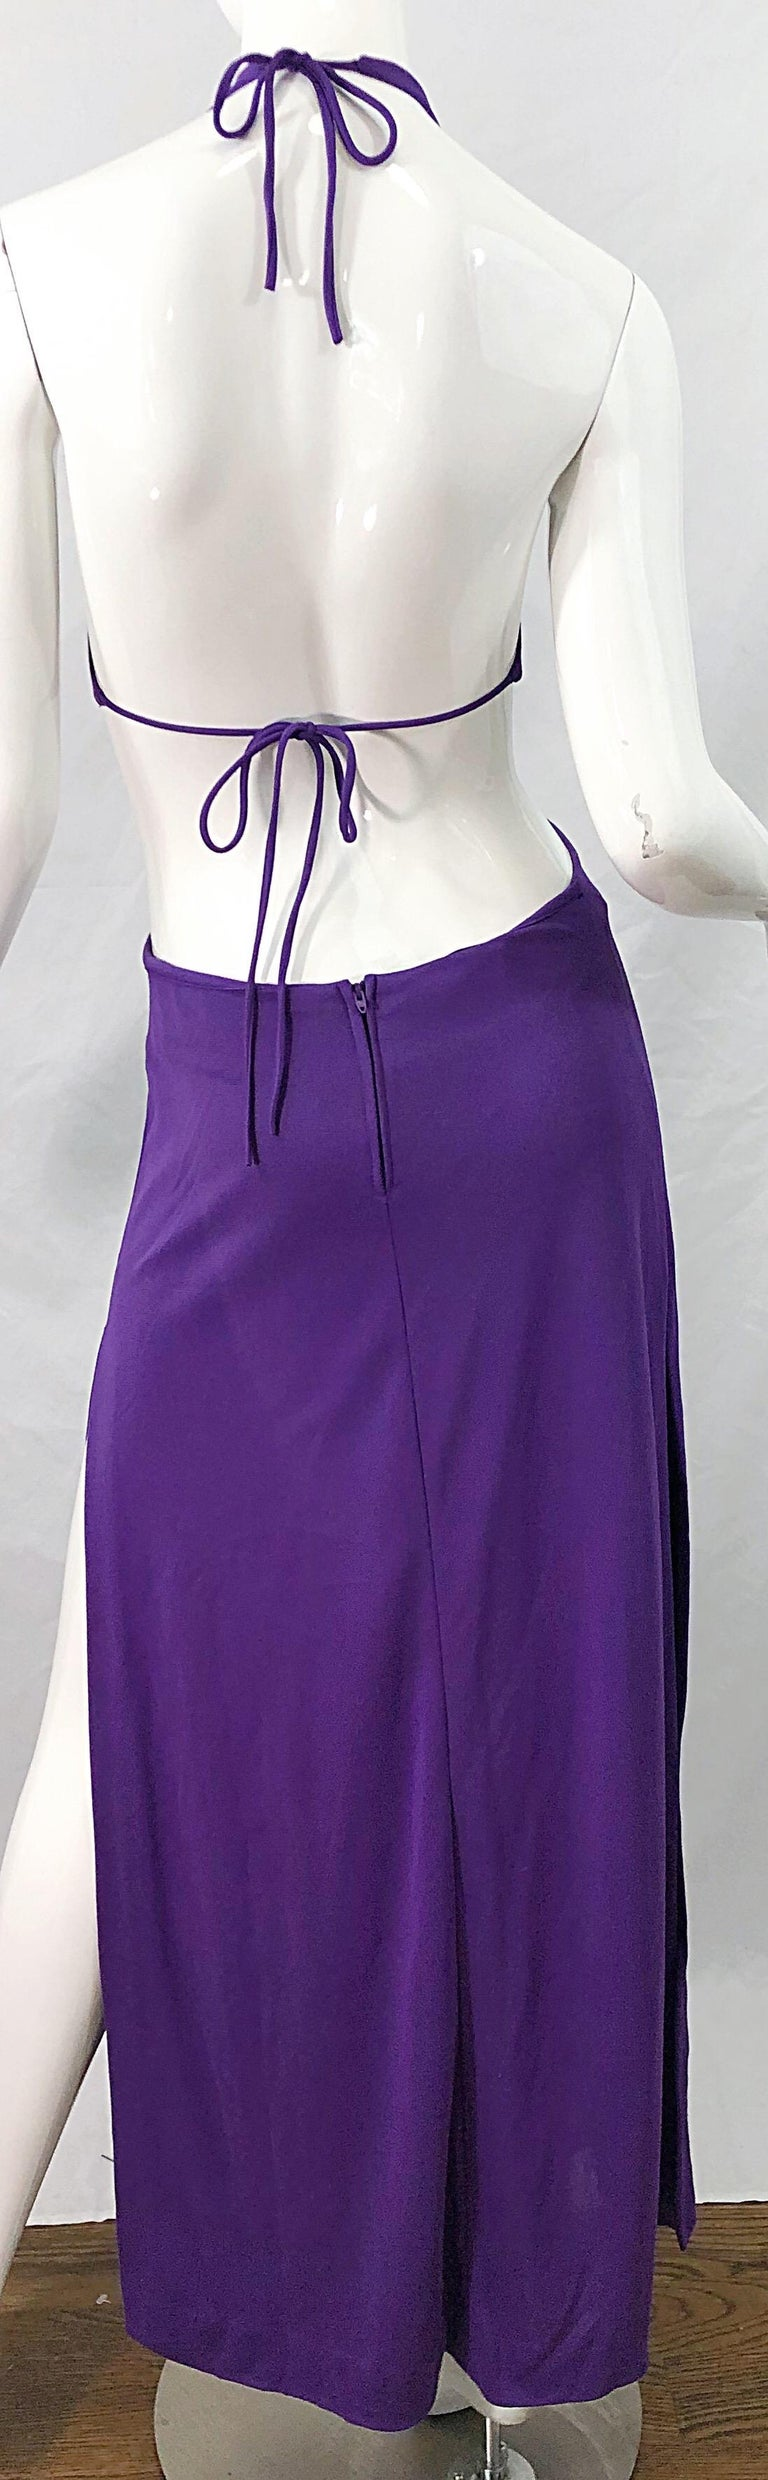 1970s Purple Cut - Out Sexy Jersey Vintage 70s Halter Maxi Dress Gown For Sale 6